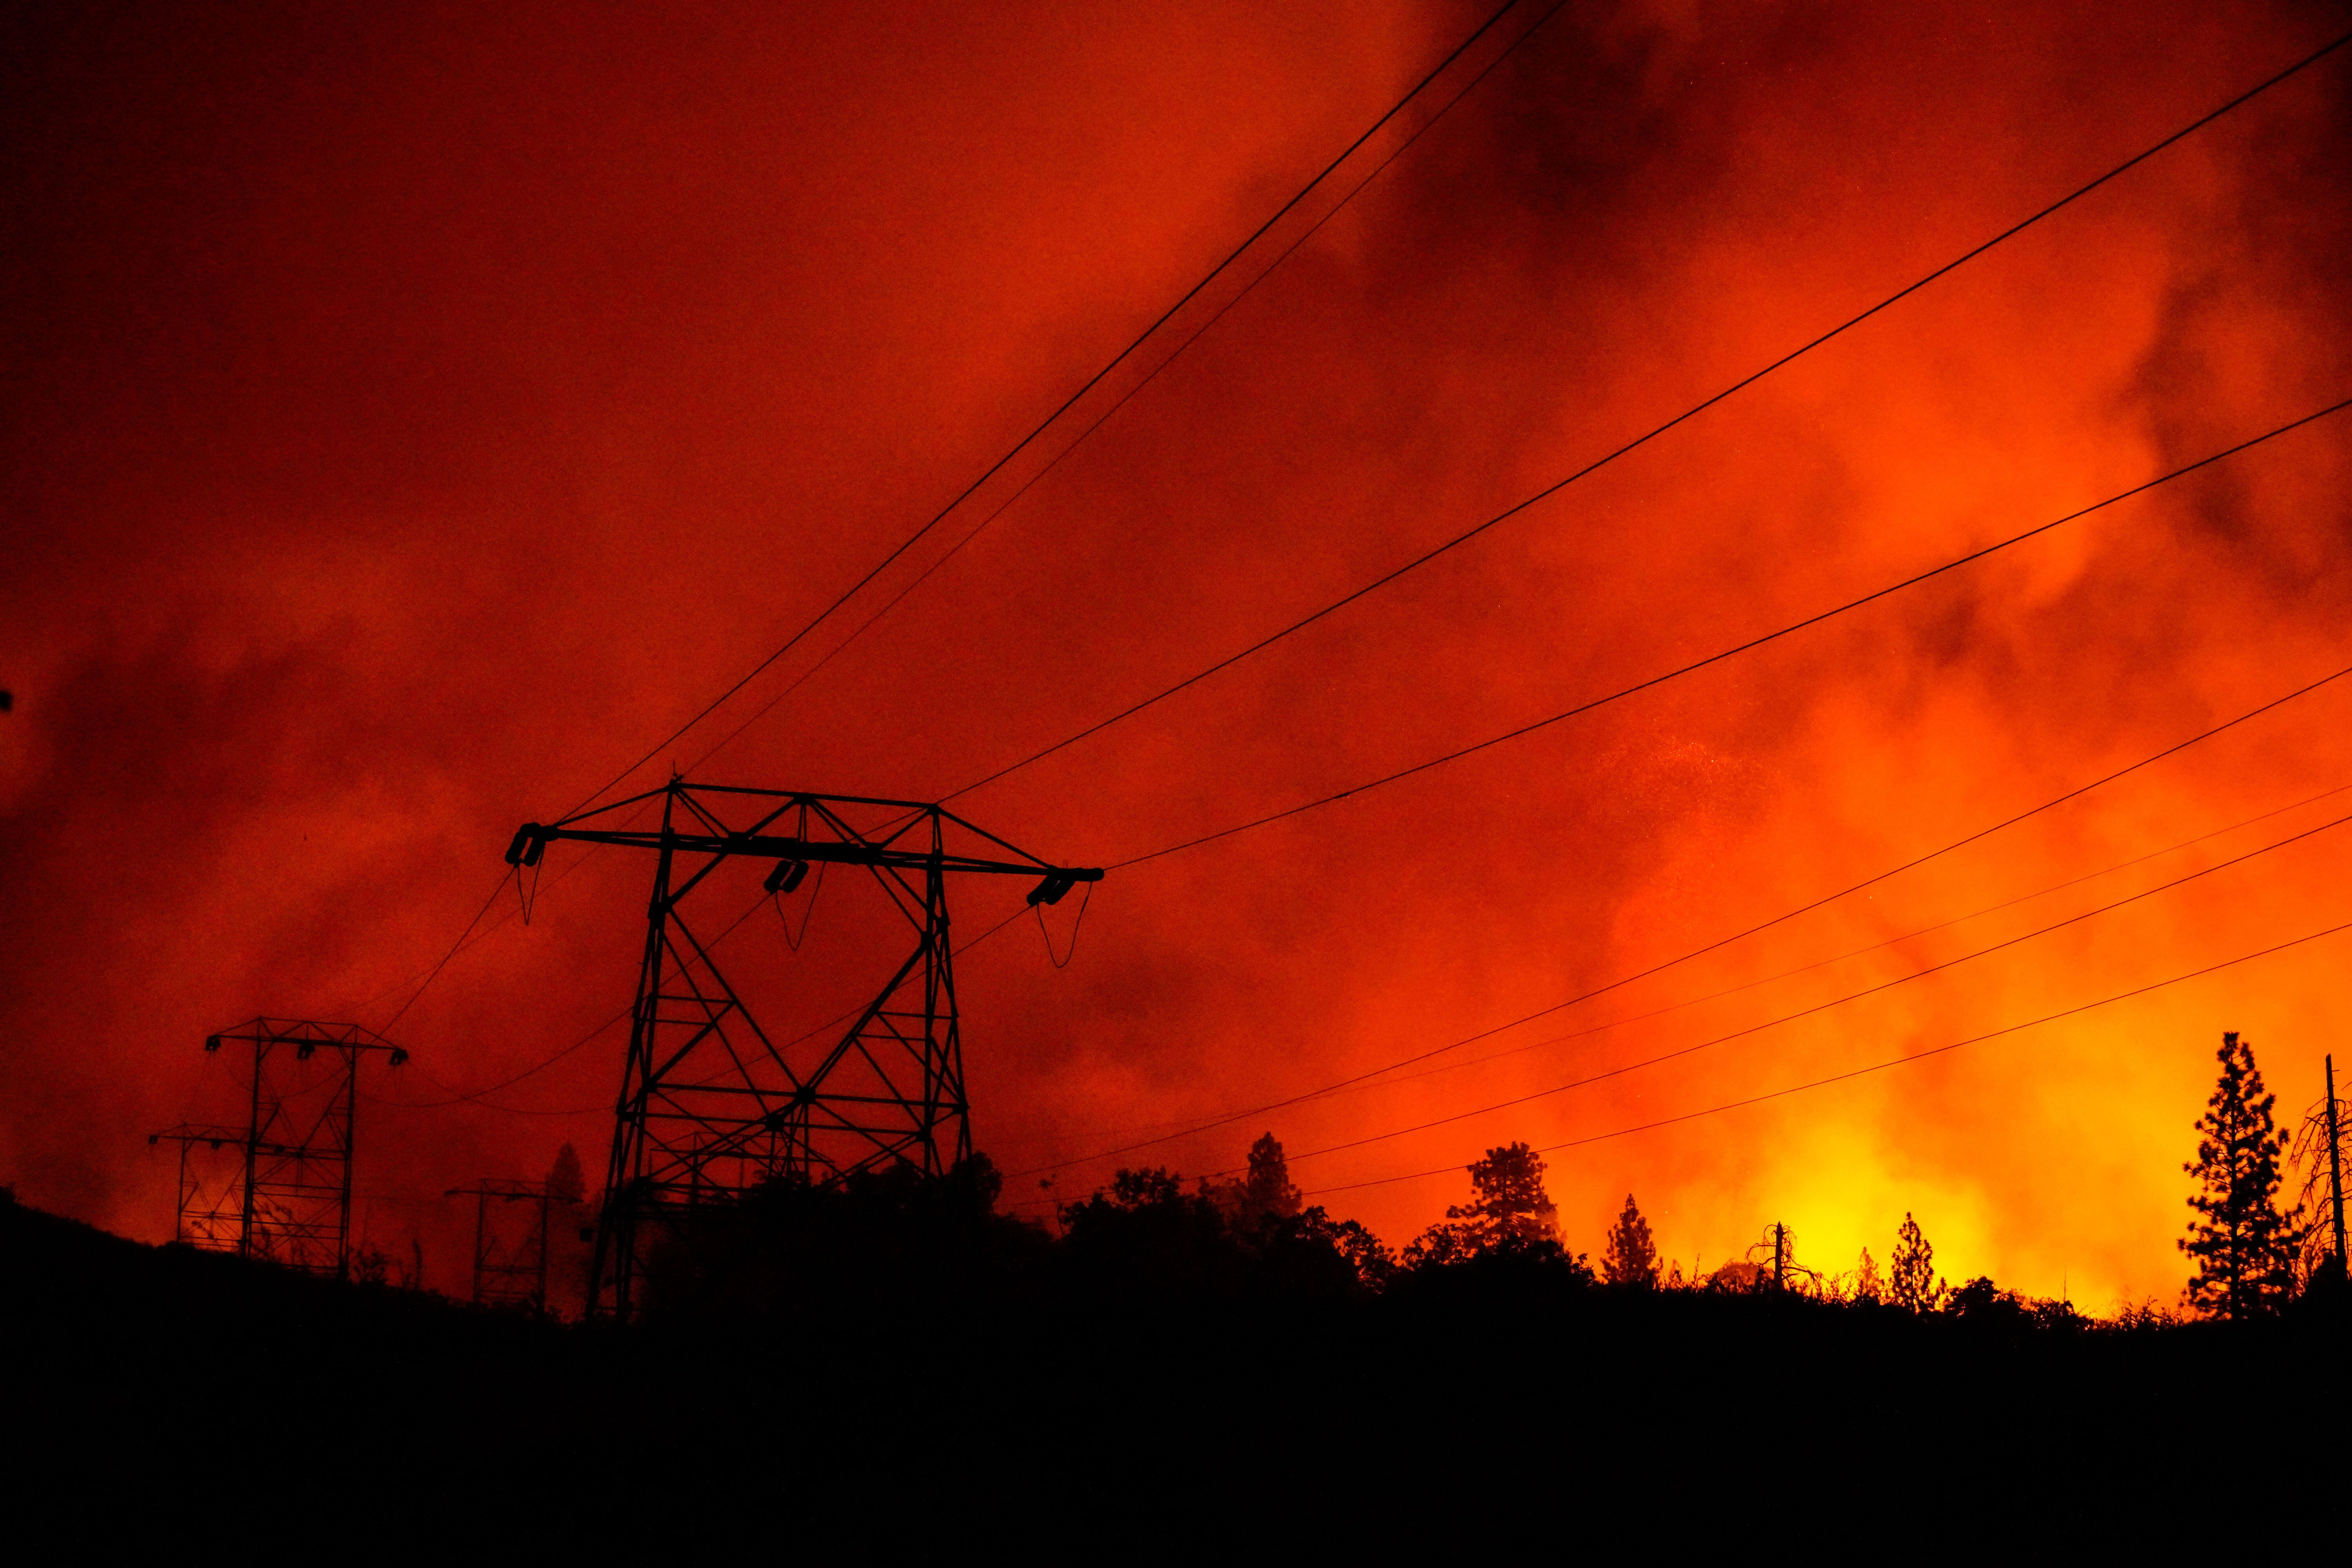 The Creek Fire creeps up on the Shaver Springs community on Sept. 8, 2020, in Auberry, California.